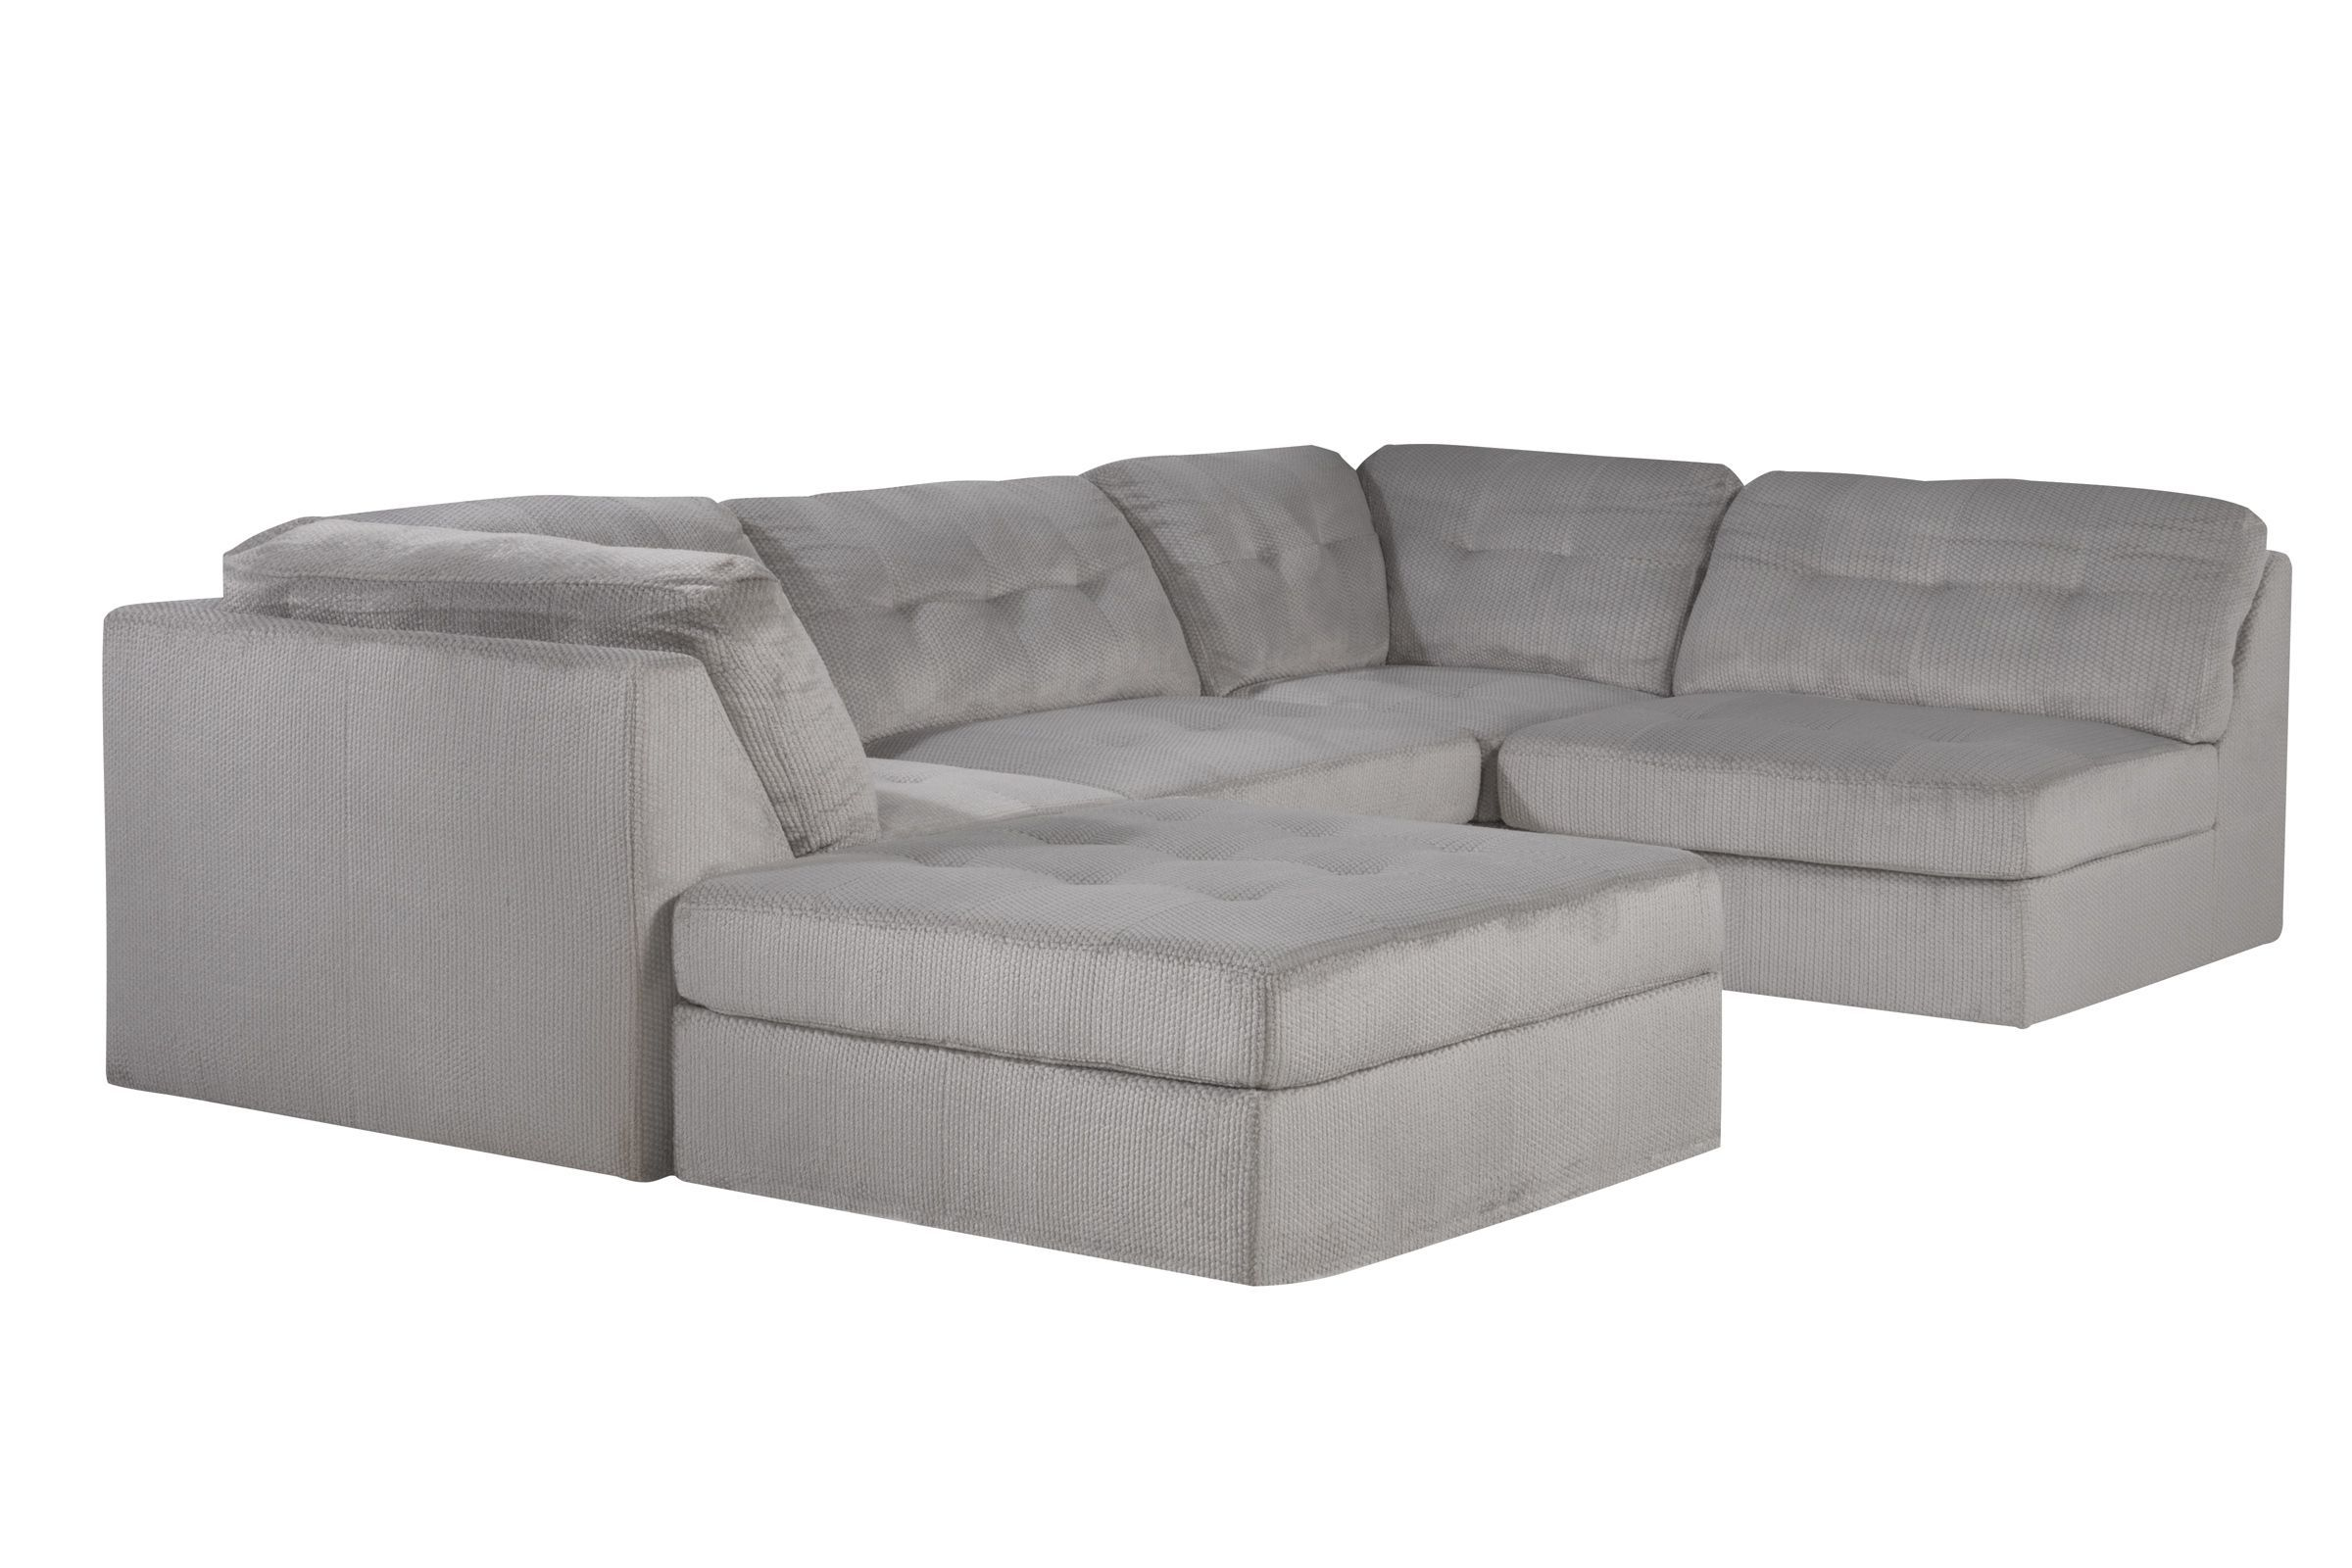 Granada Sectional Ottoman Sectional Ottoman Furniture Home